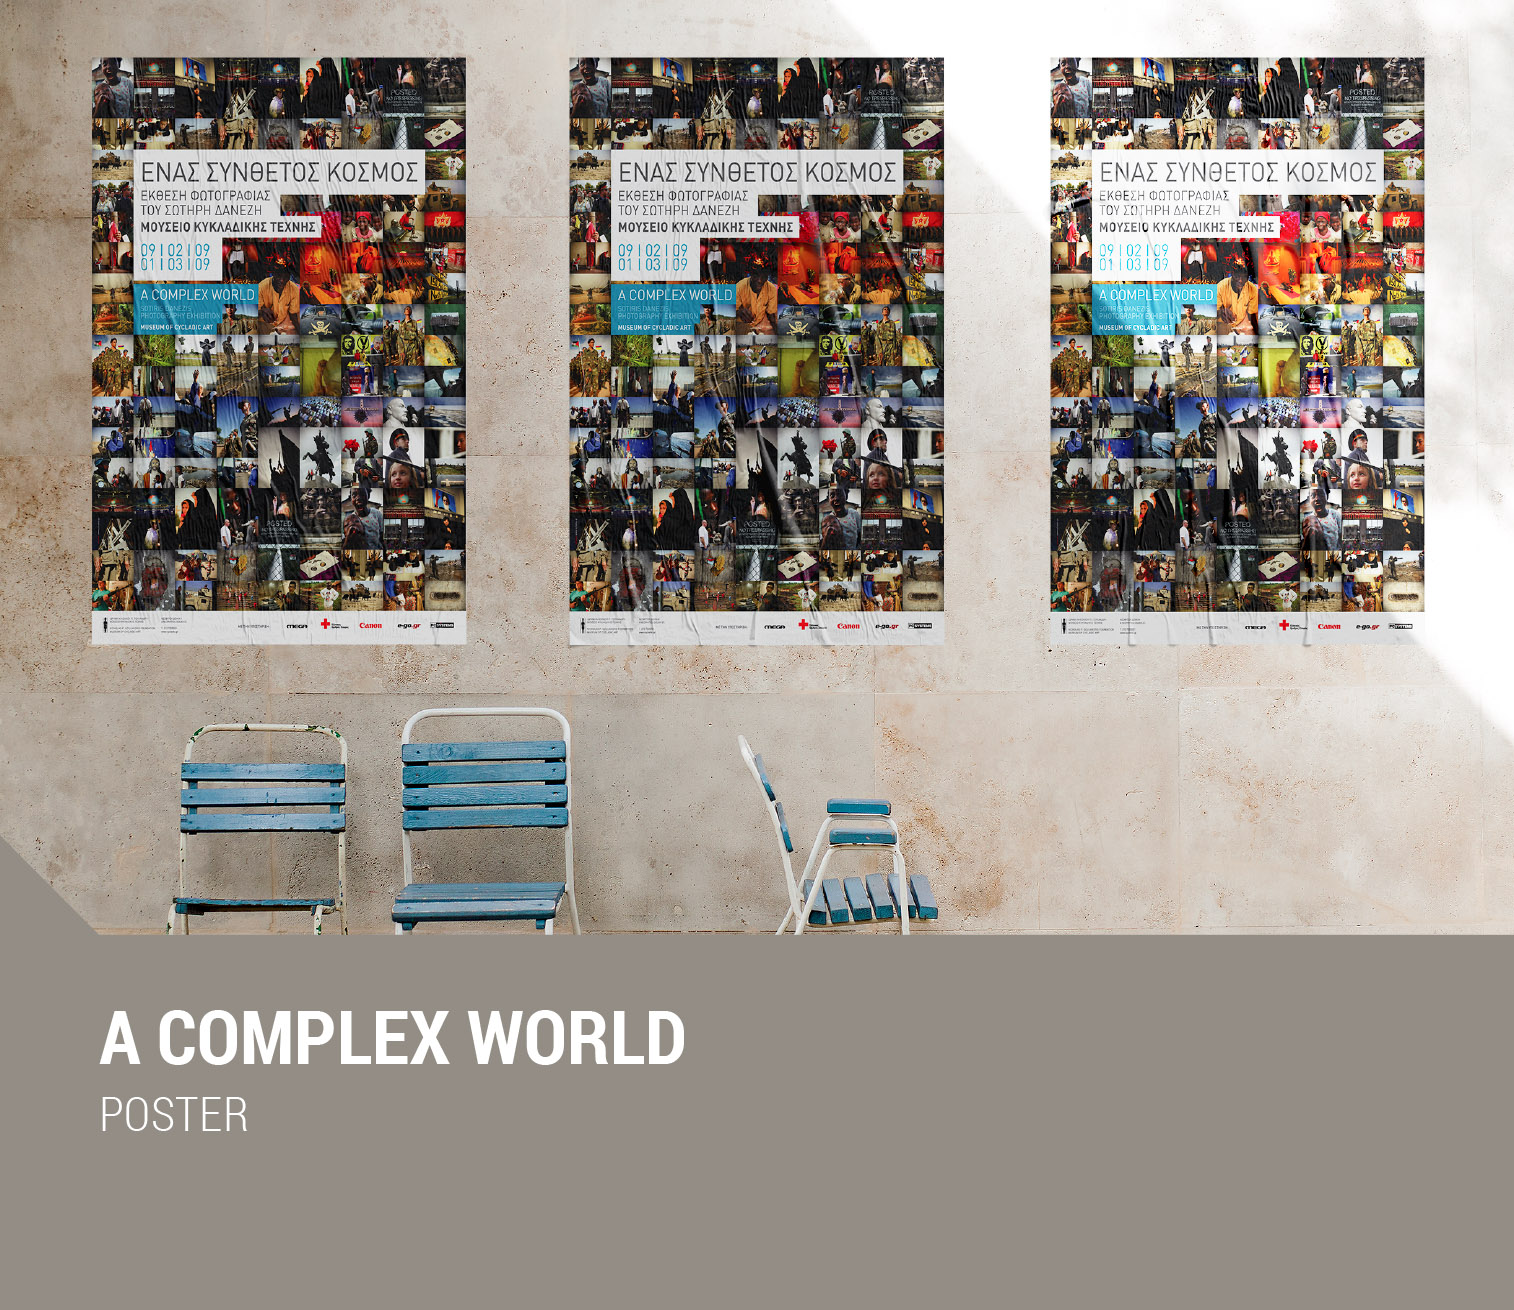 Schema Dimitra Chrona designer, creative director, architectural, 3D visualization, 3D Rendering, branding websites, digital, graphic design, interior design, real estate, luxury property, staging, museum, virtual, art, brochures, exhibitions, logotype, logo, Canada Quebec Montreal Athens Greece schema design a complex world small.jpg